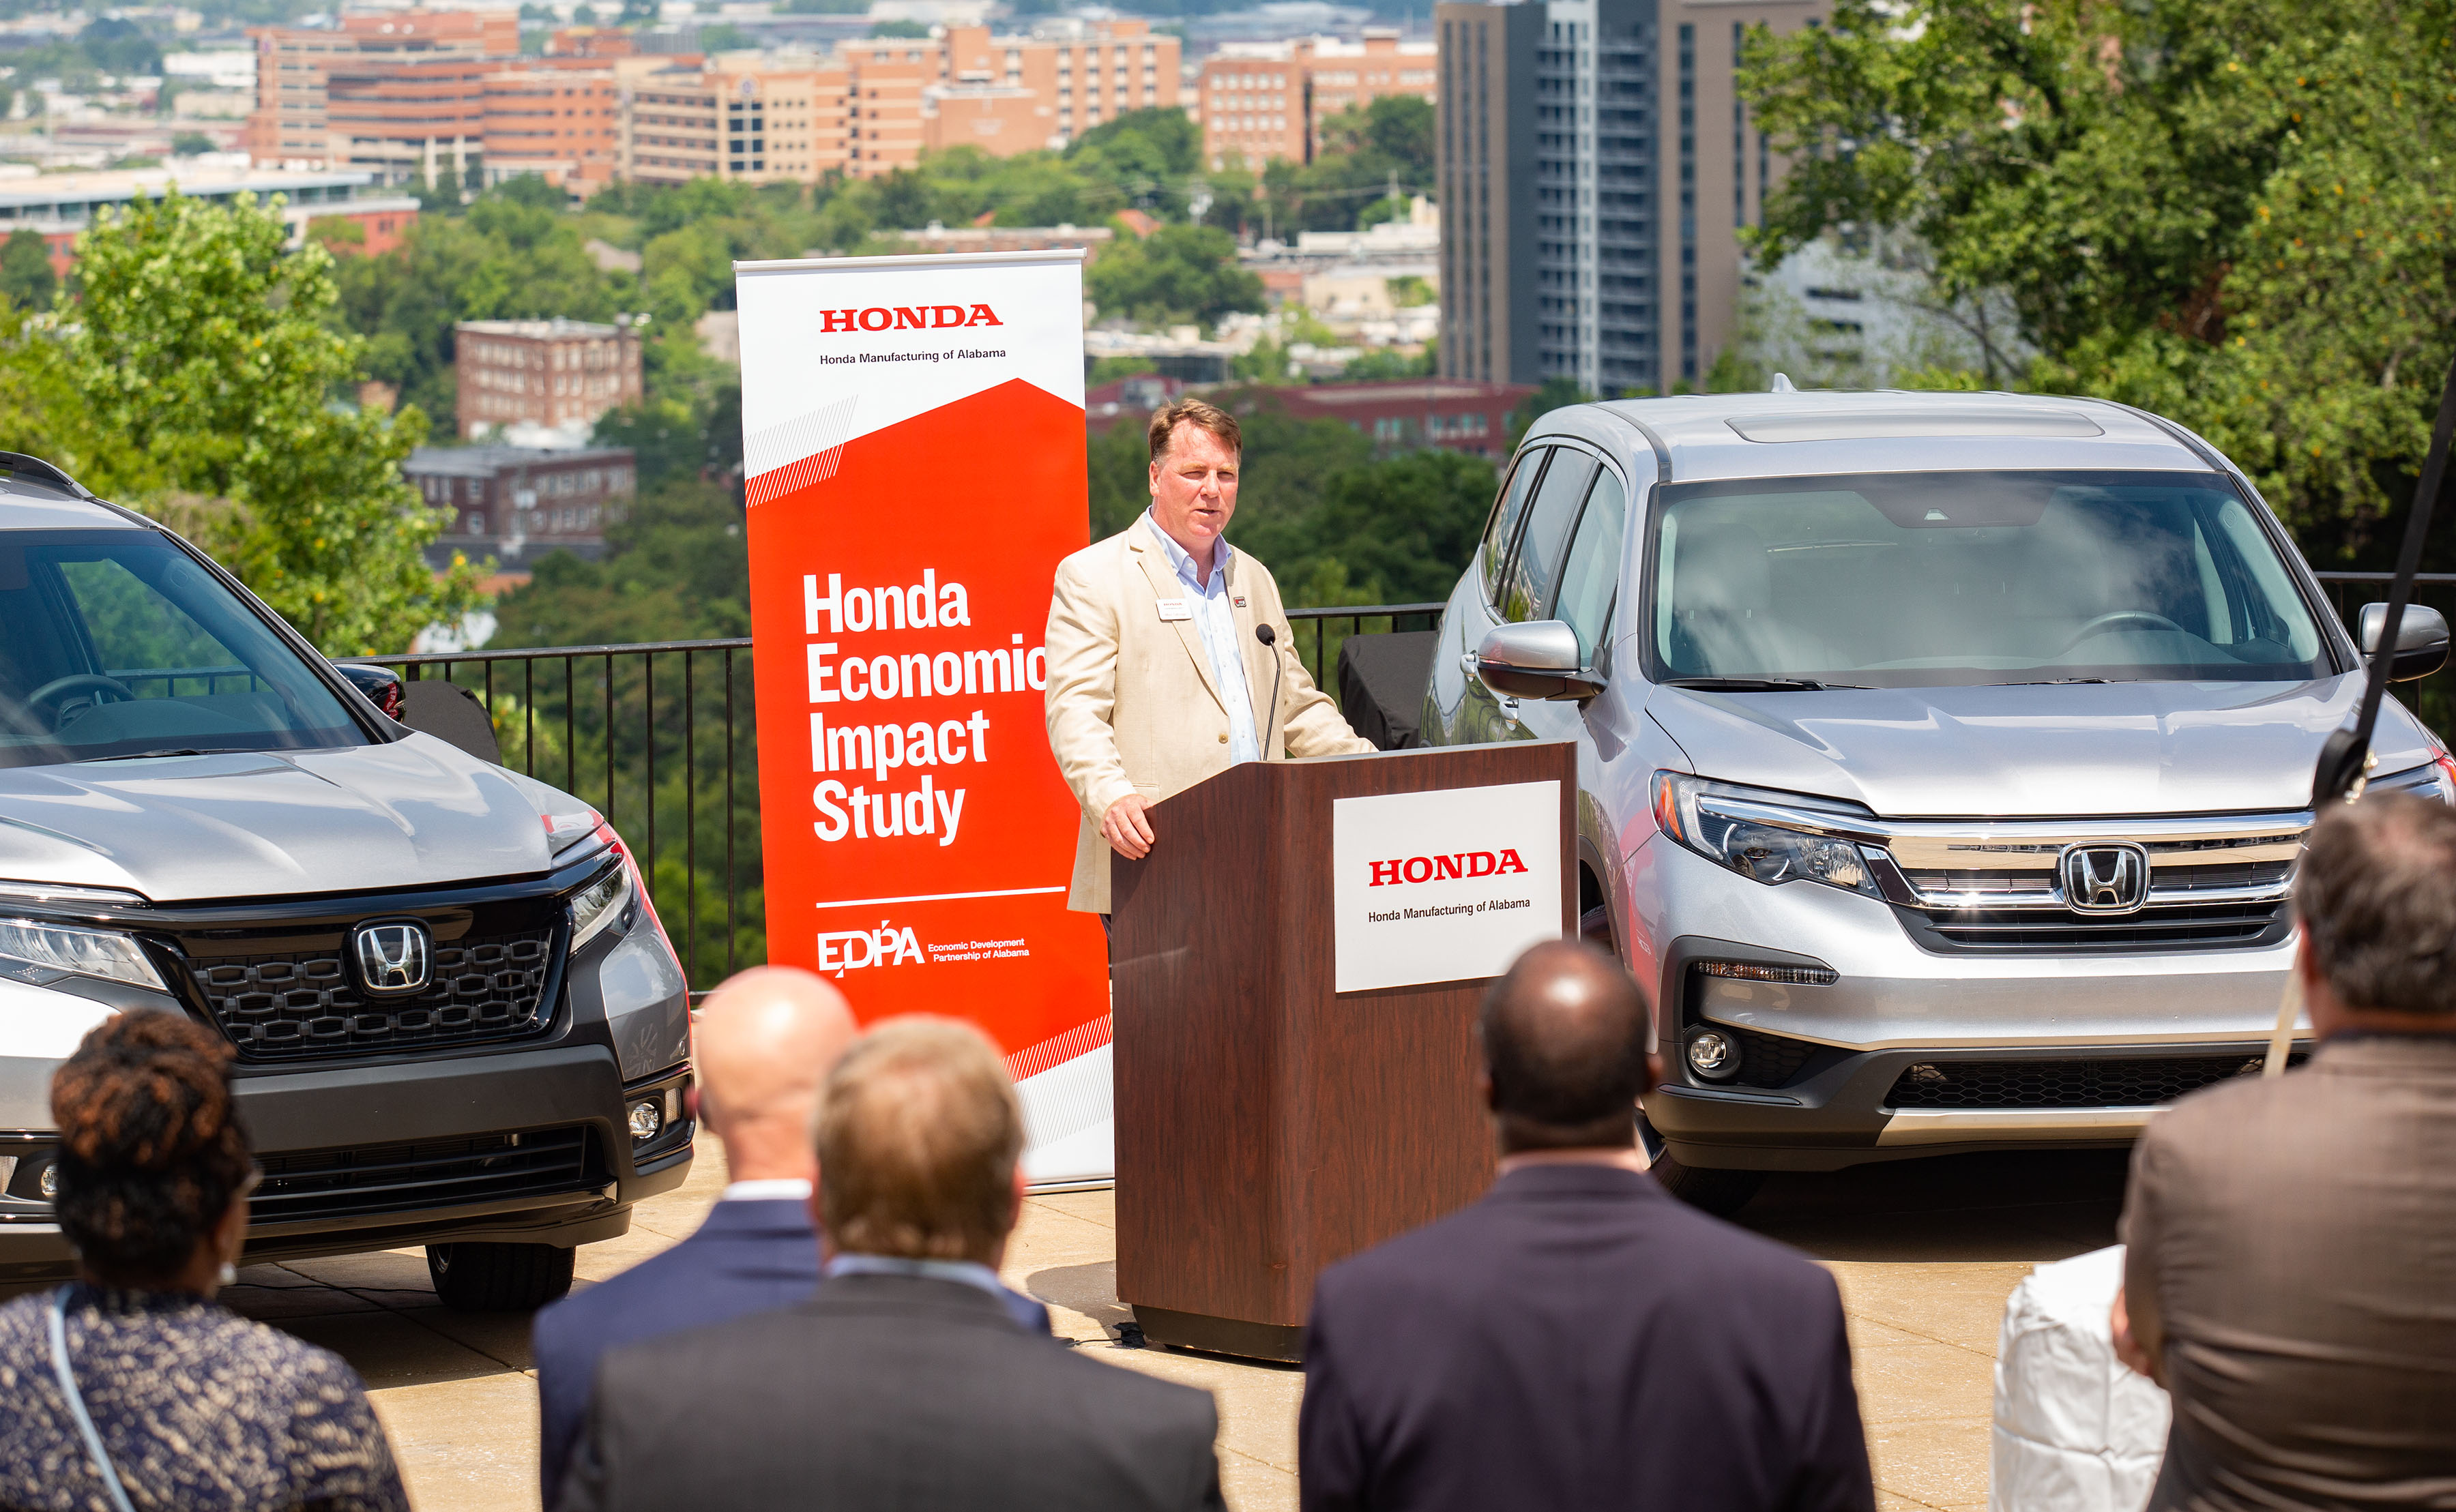 Honda Responsible For $12 Billion Annual Economic Impact and 45,000 Jobs in Alabama